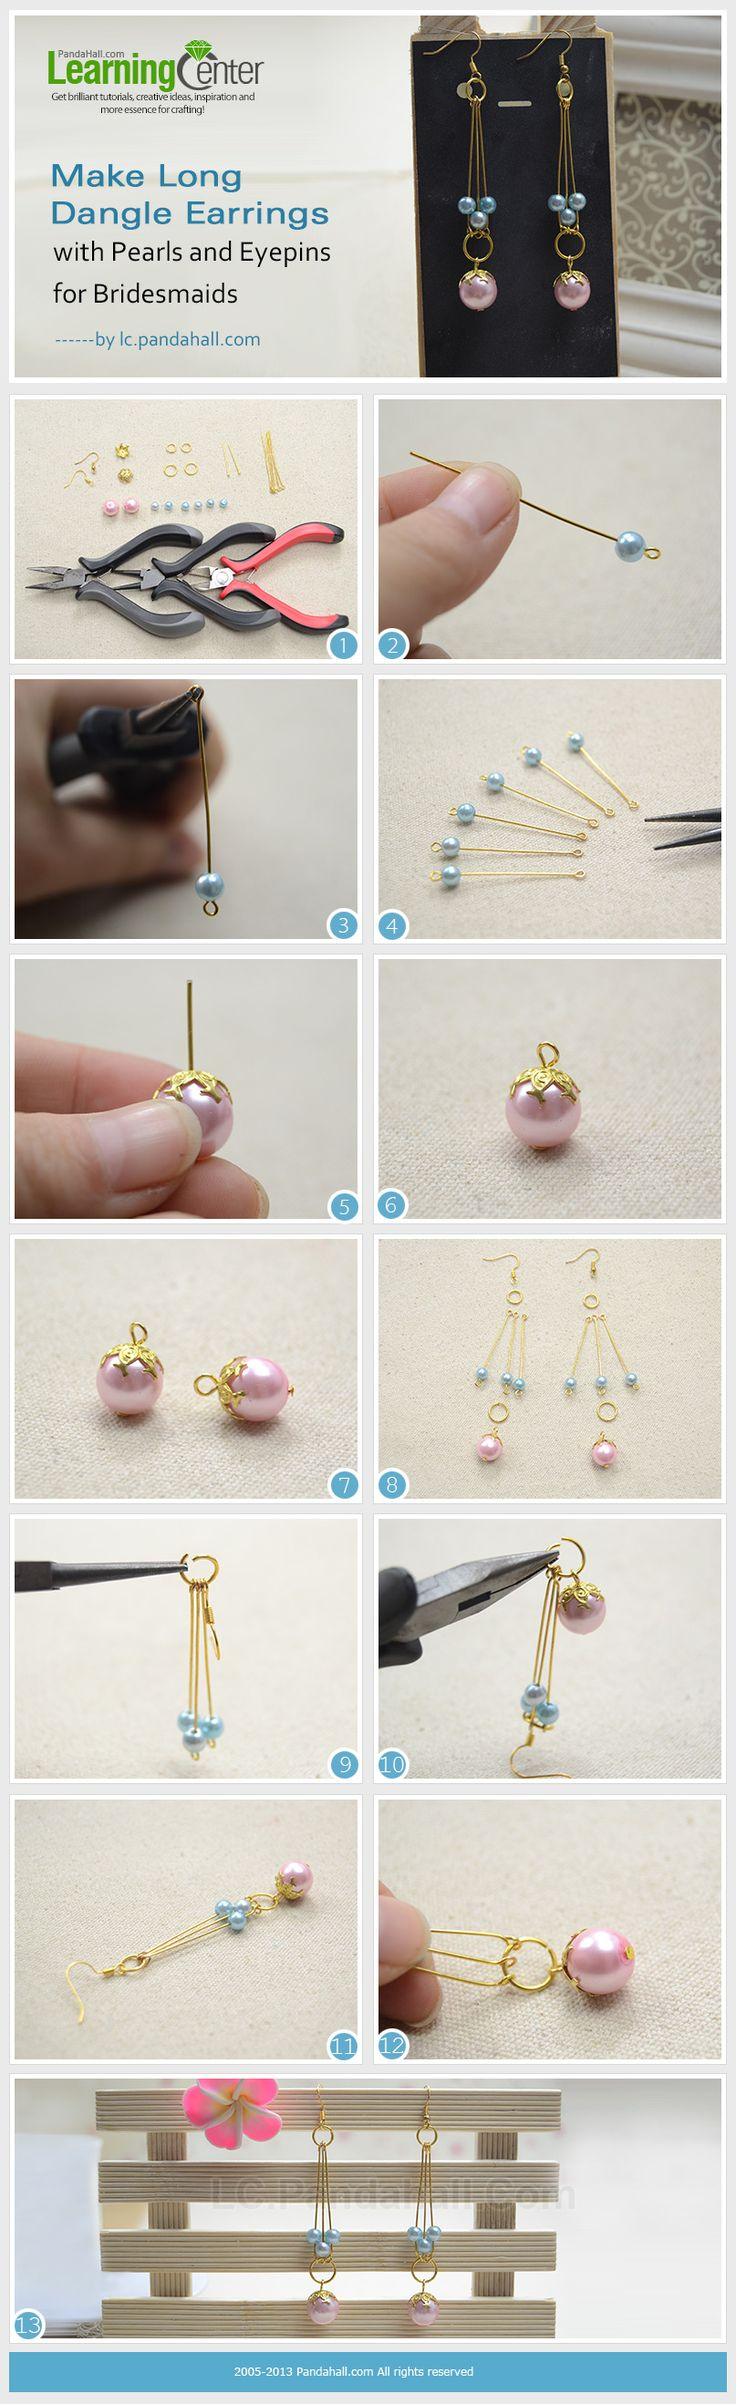 By using simply pearl beads, eyepins, headpins and two jumpring, you can make beautiful dangle pearl earrings for bridesmaids at home! Easy and economical!